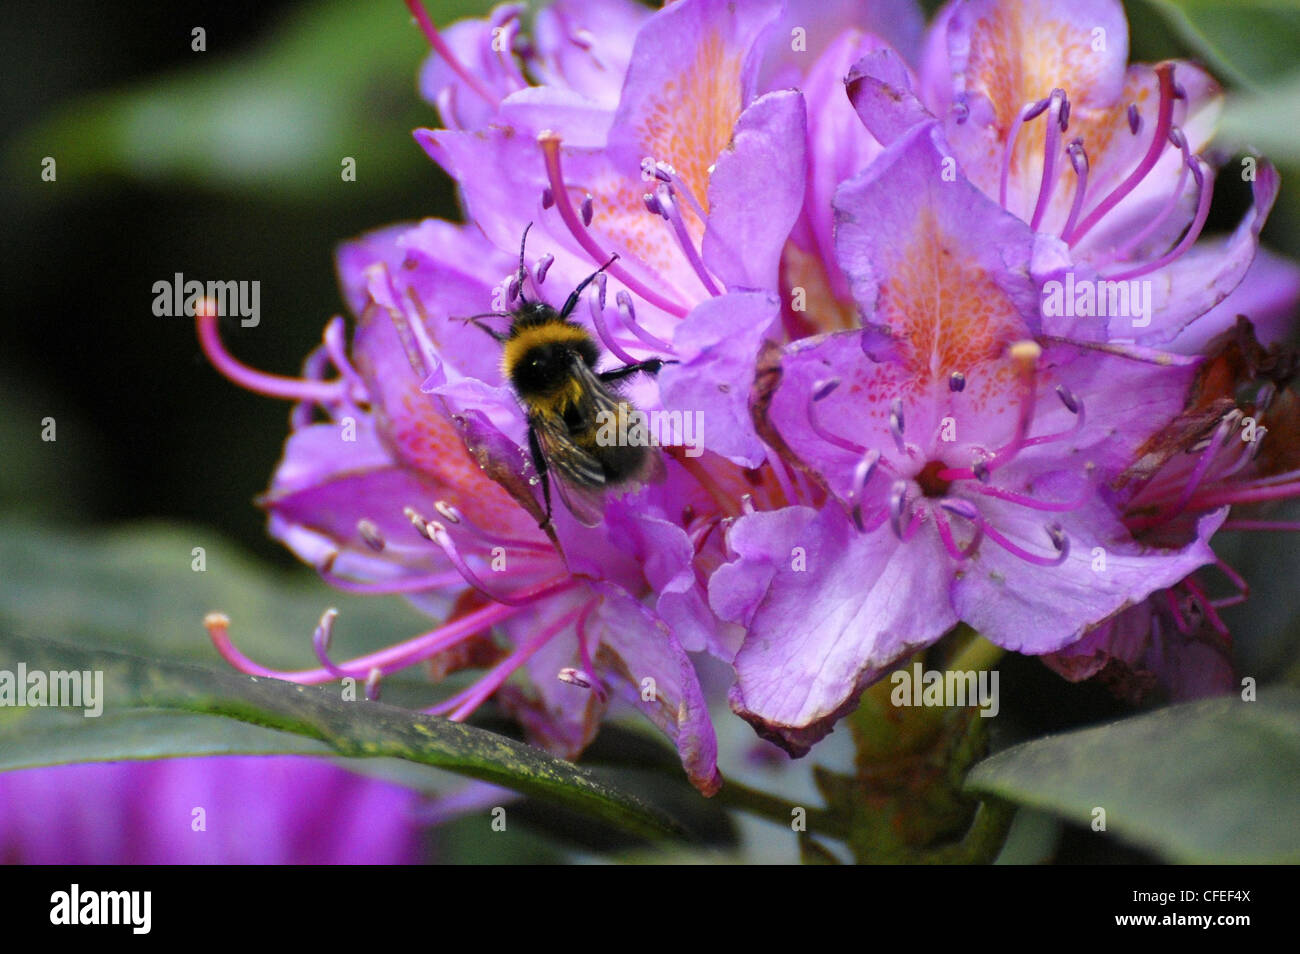 Bumblebee taking pollen from flower Stock Photo